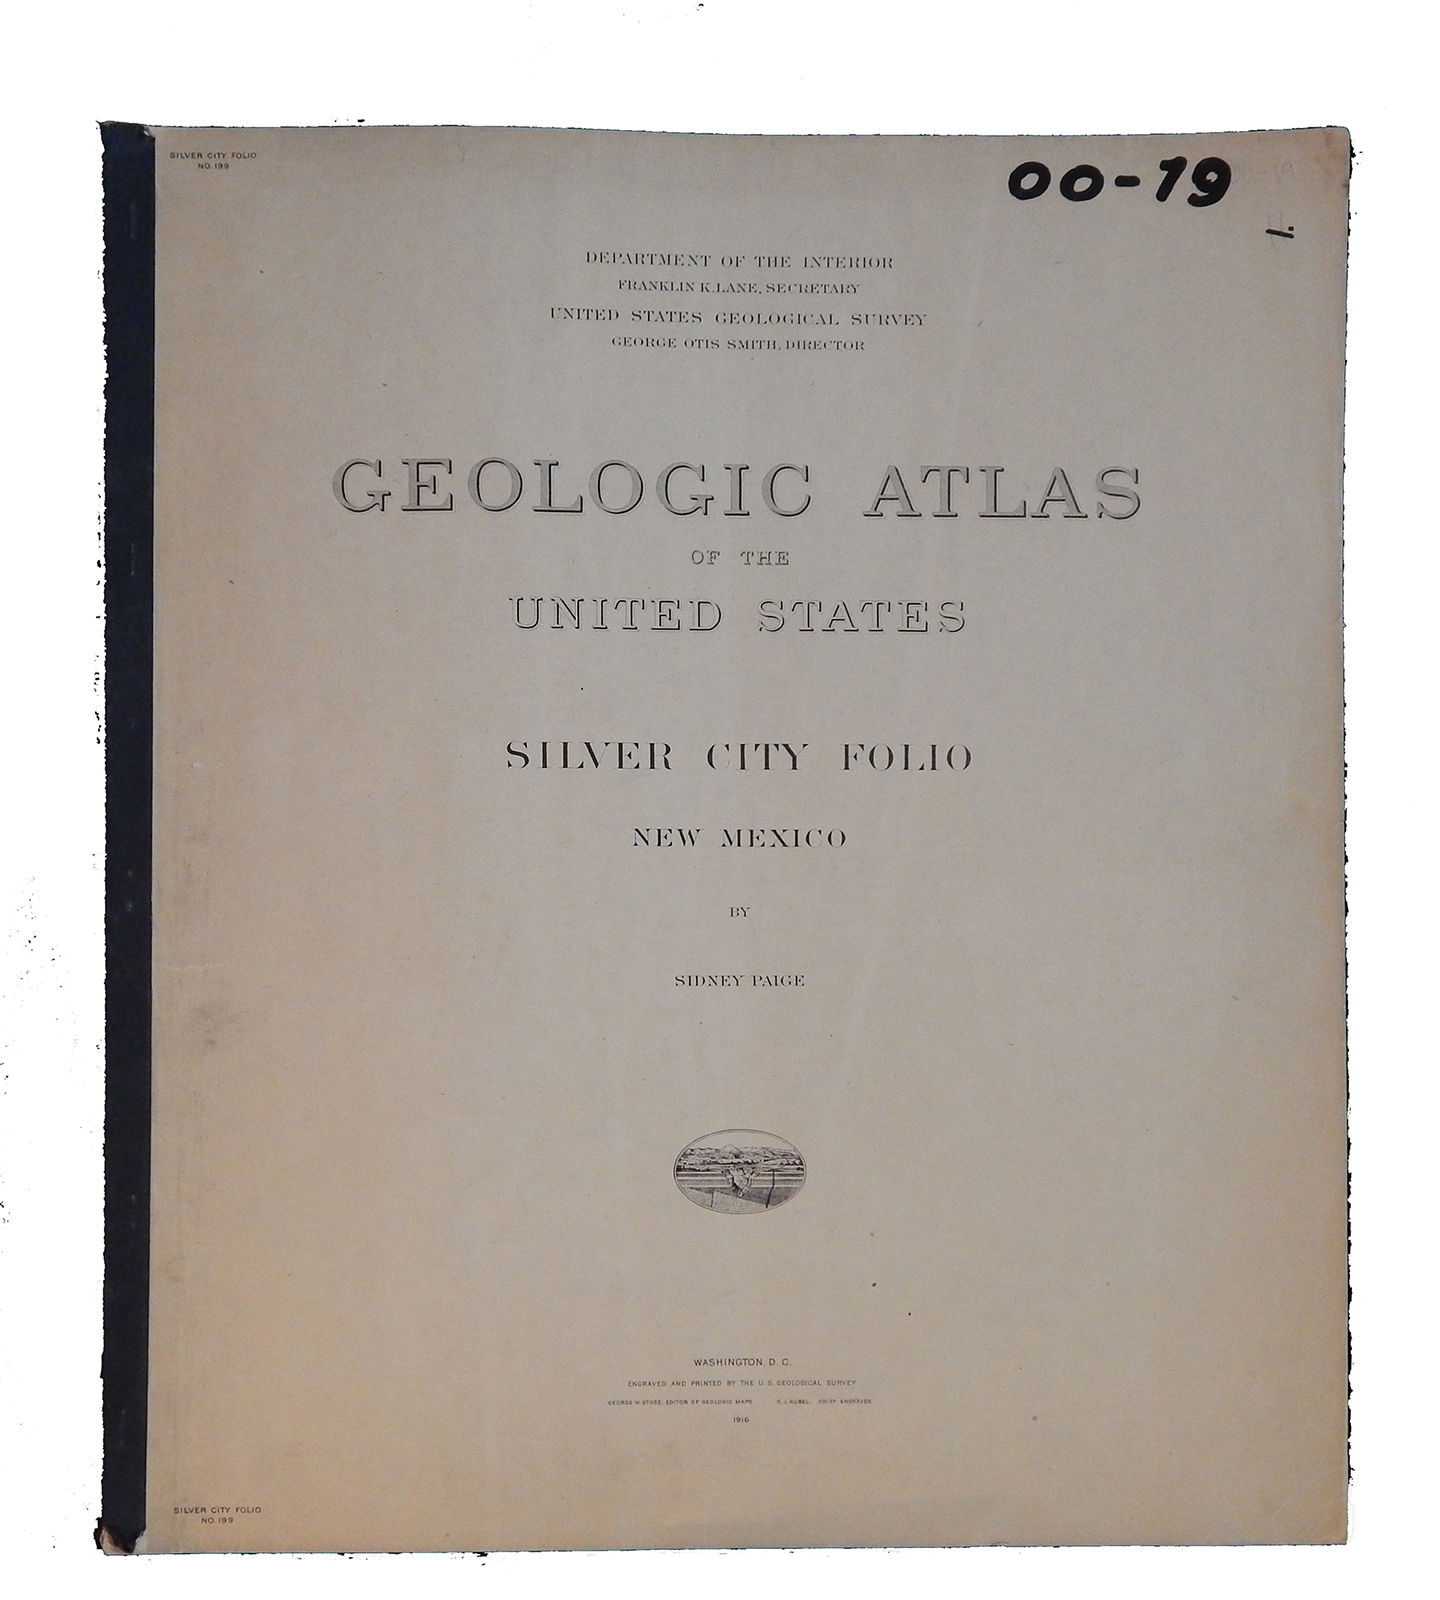 Image for Geologic Atlas of the United States Silver City Folio, New Mexico